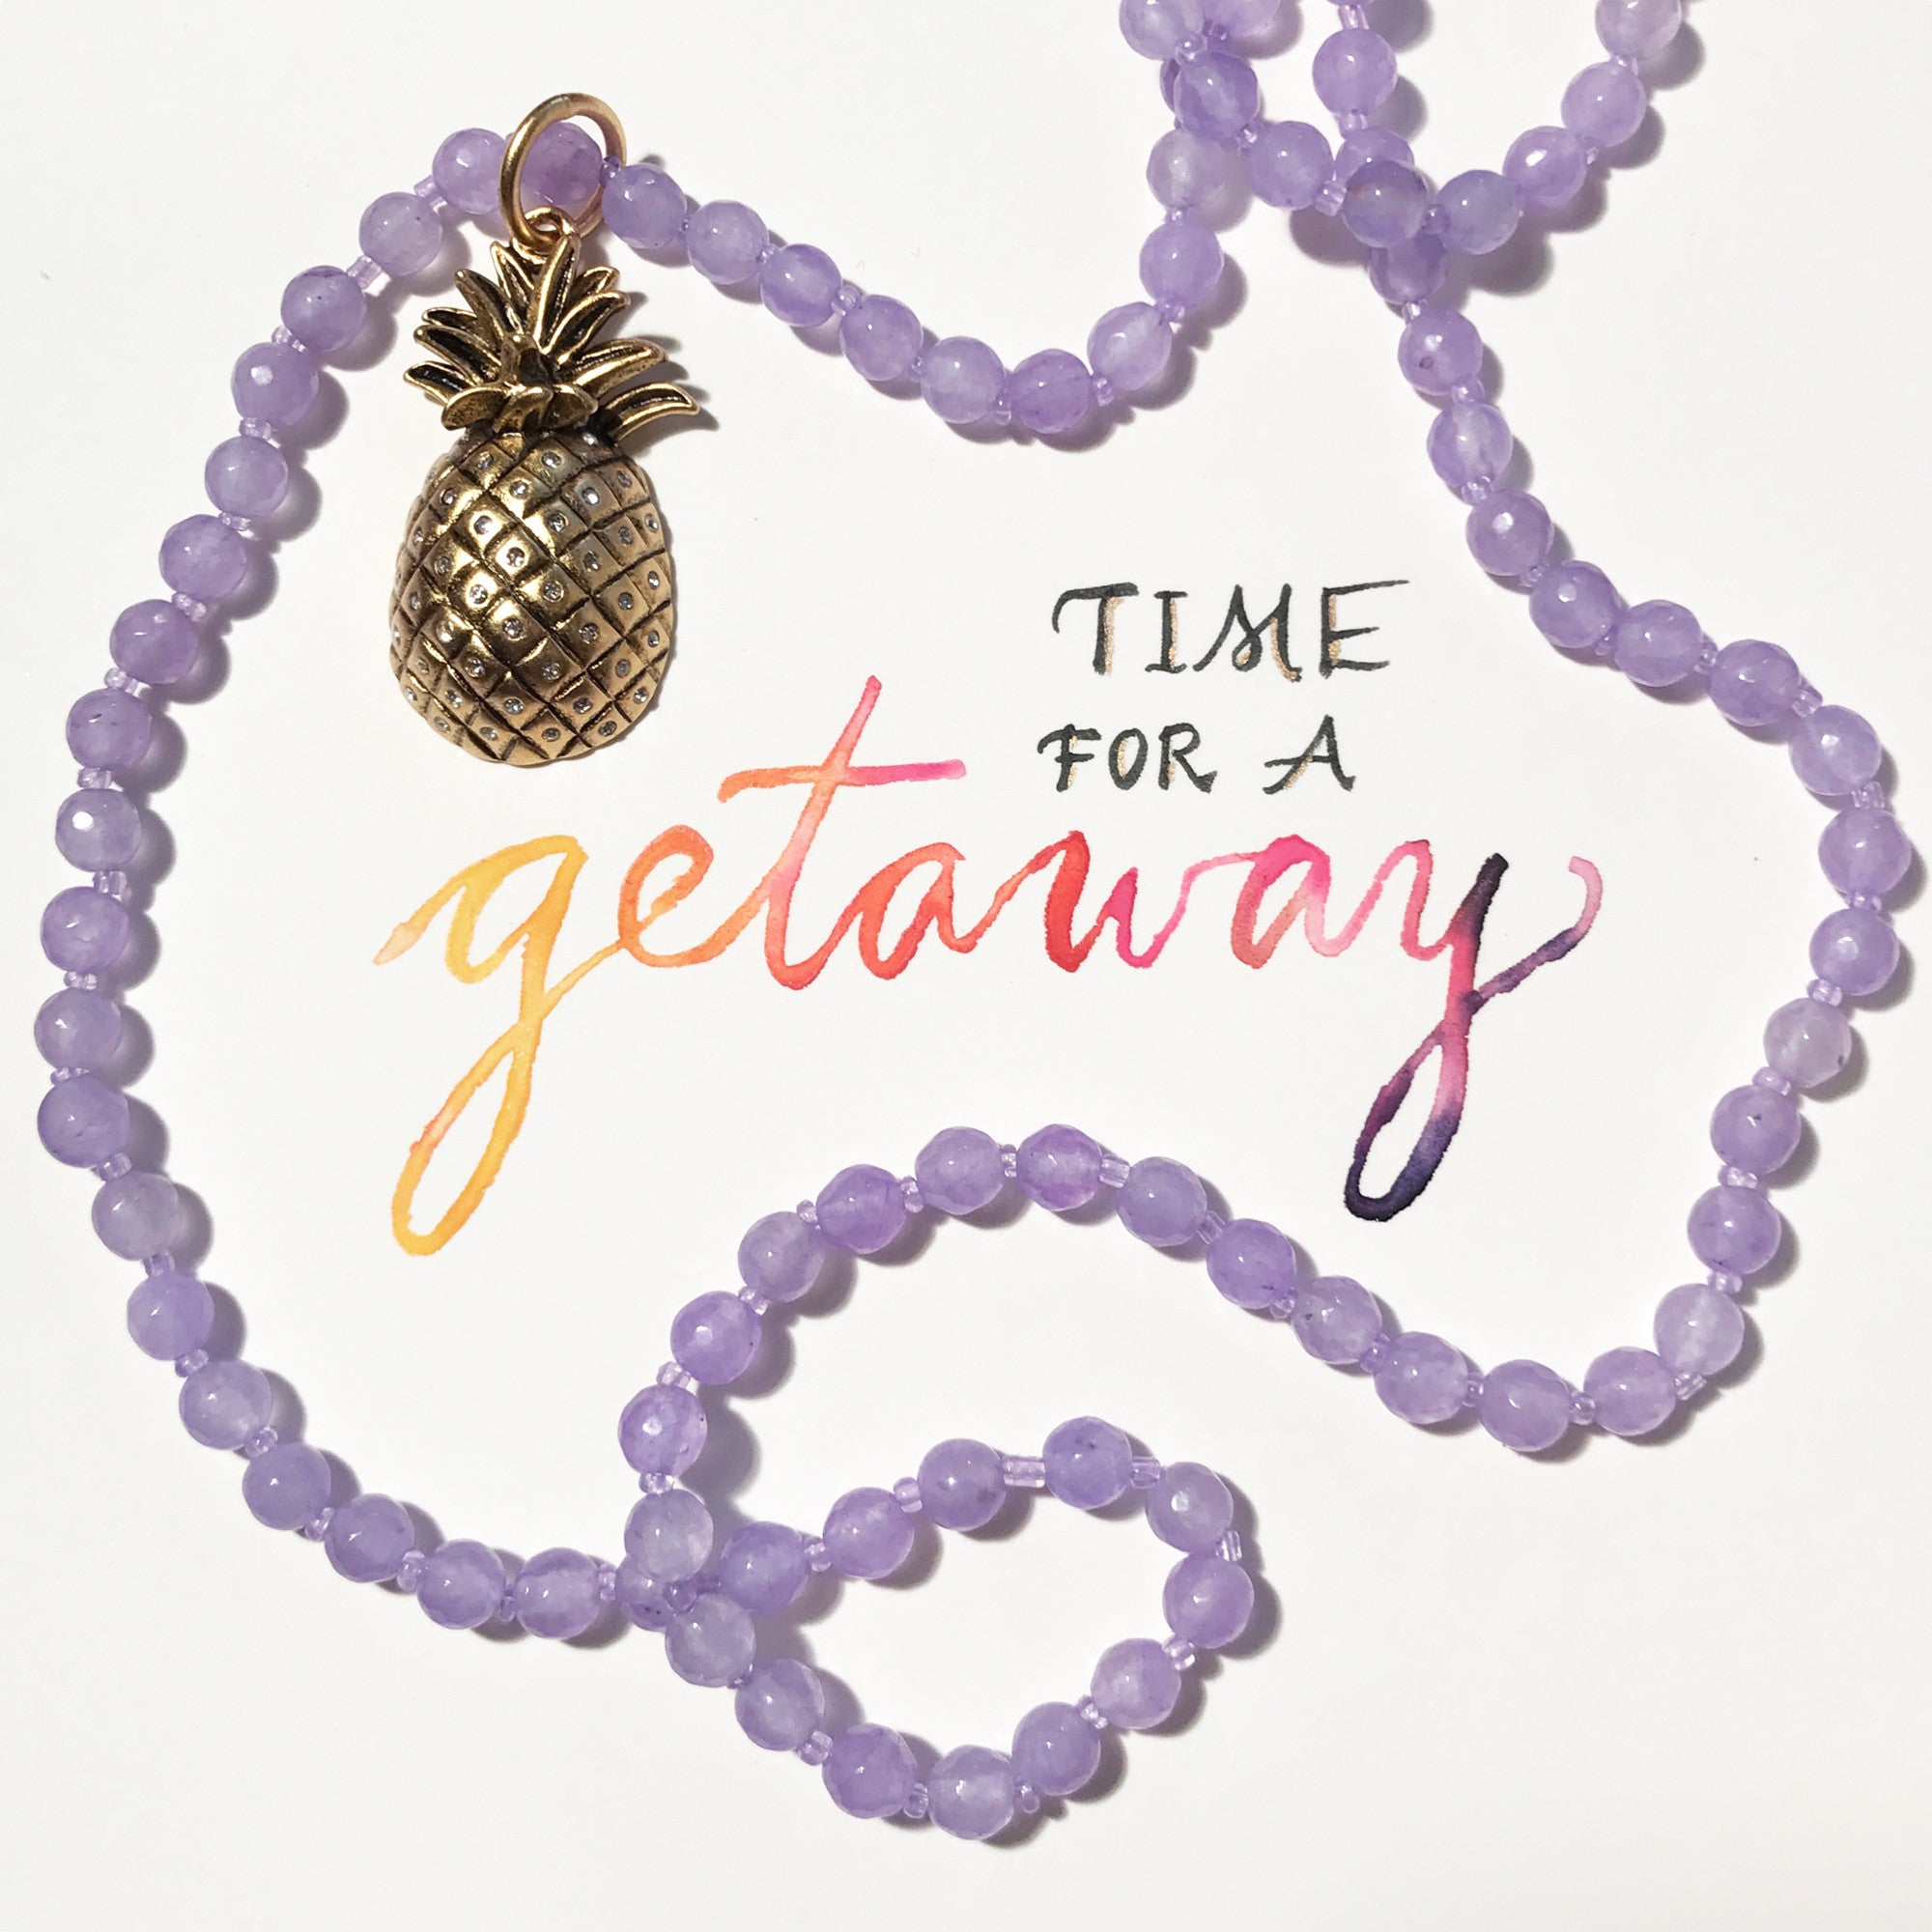 #SequinSayings - Time for a Getaway